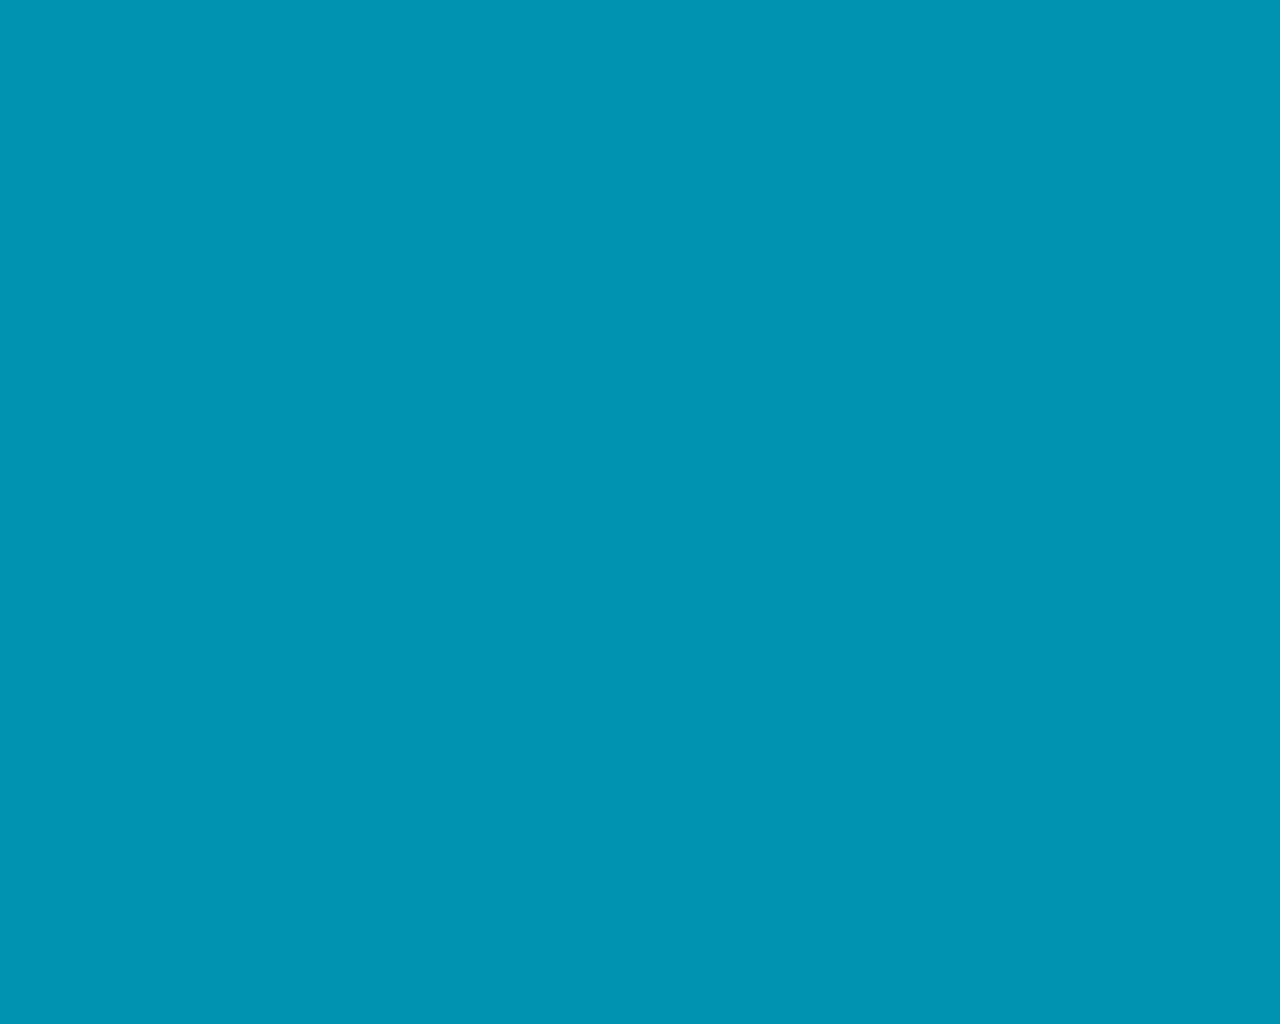 1280x1024 Blue Munsell Solid Color Background